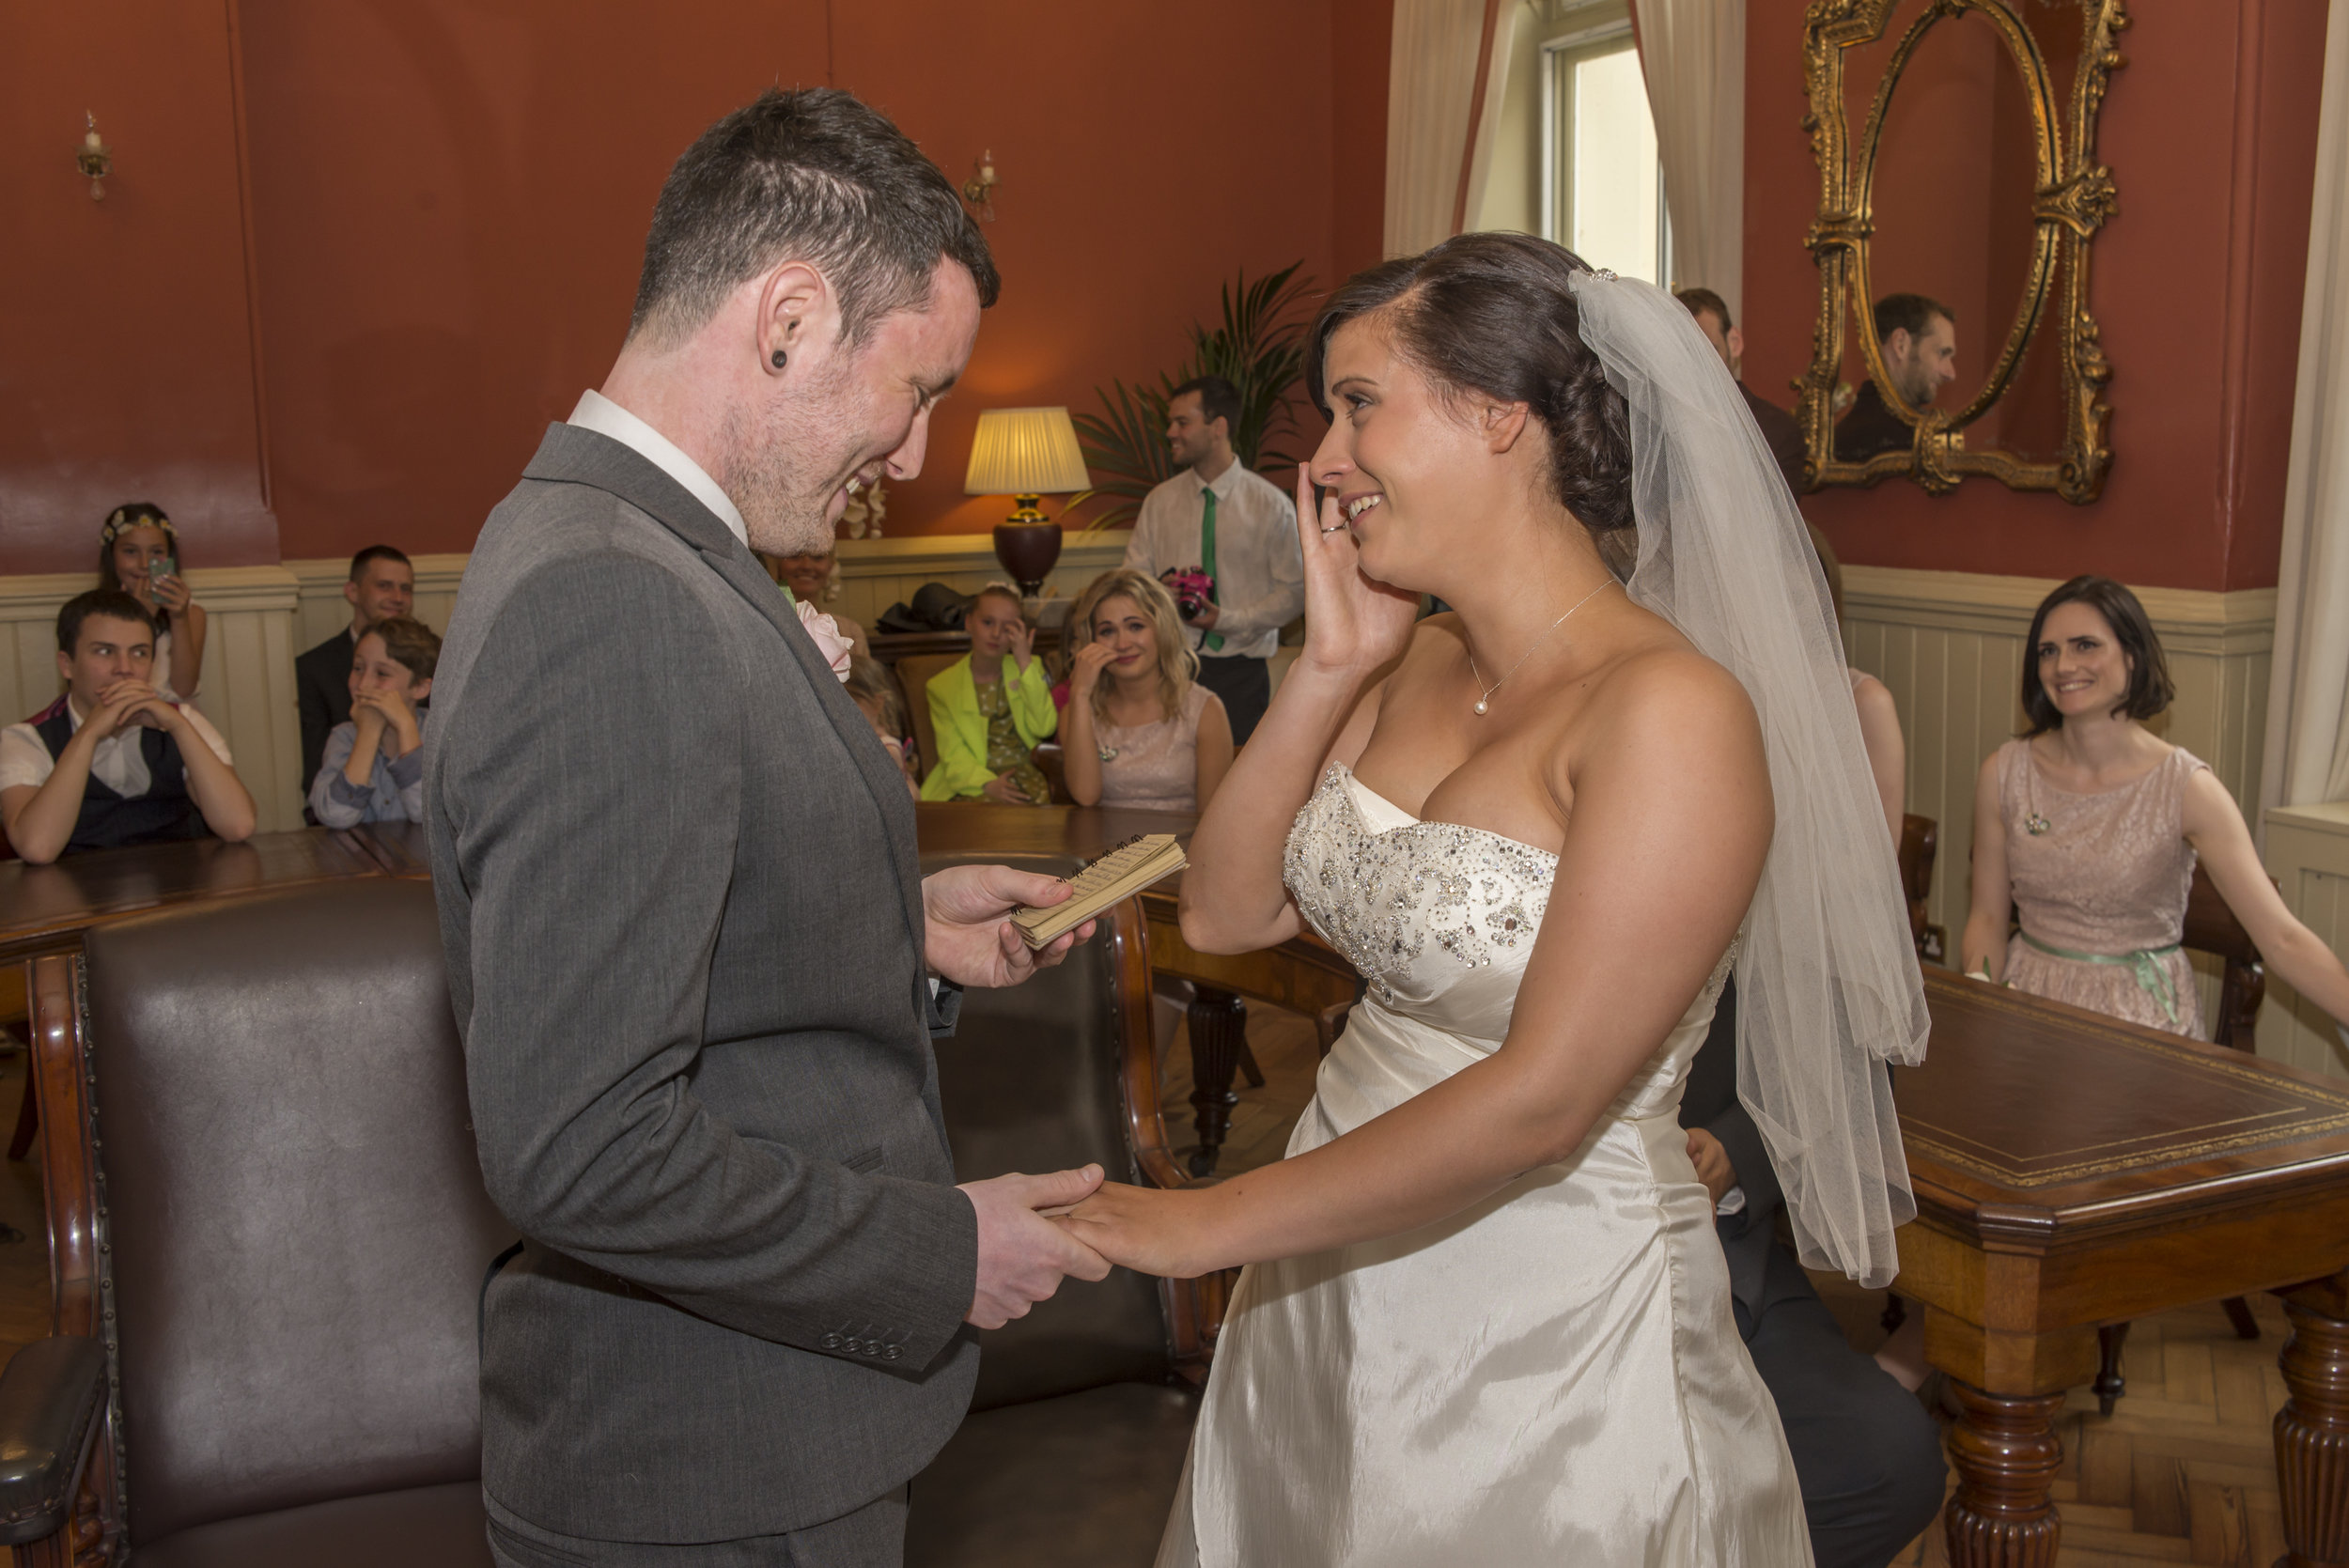 Wedding Photography - Brighton, Town Hall 2